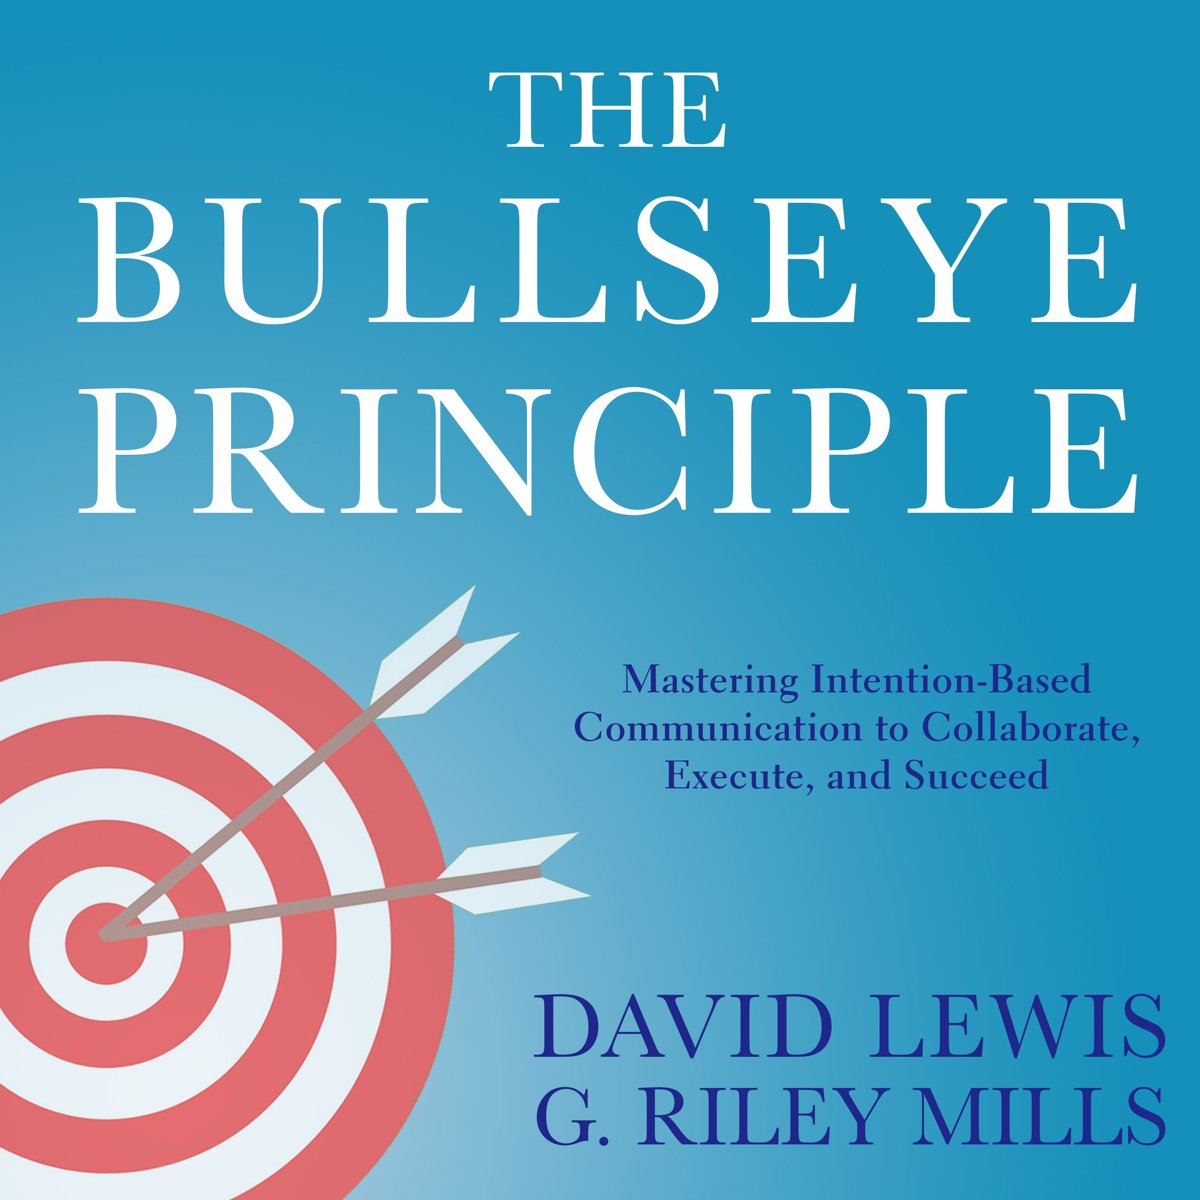 The Bullseye Principle